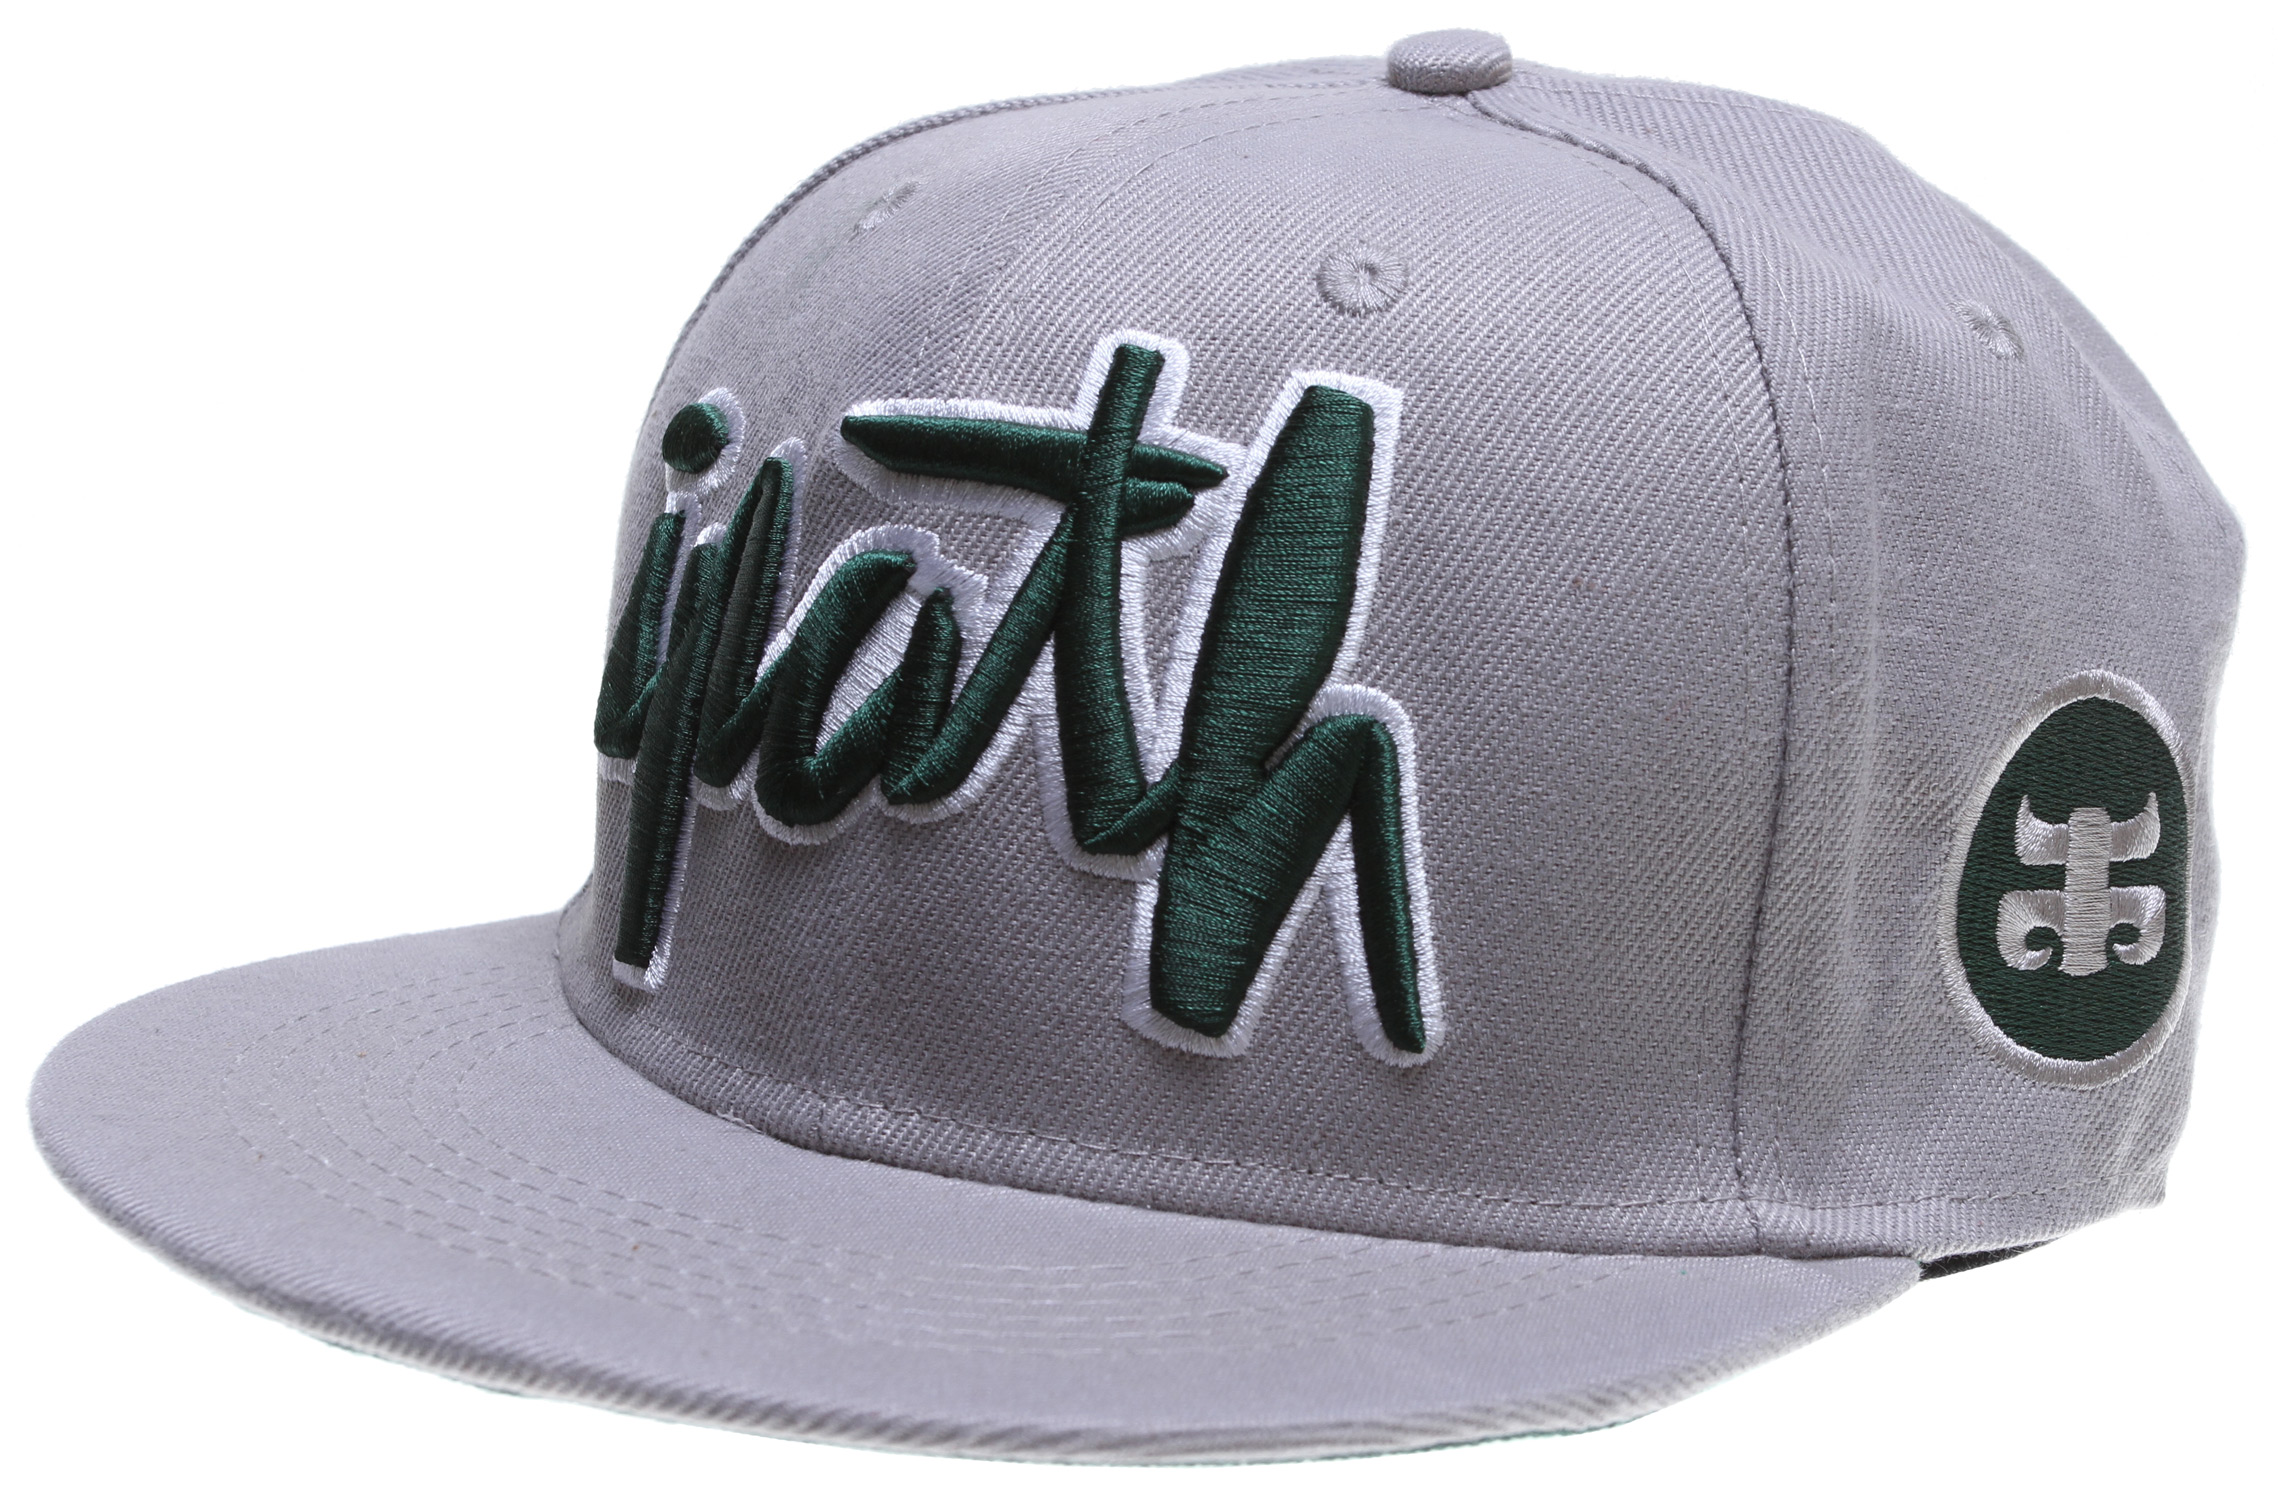 100% Cotton/Poly Blended Snap Back With Full Ipath Scripted Embroidery - $12.95